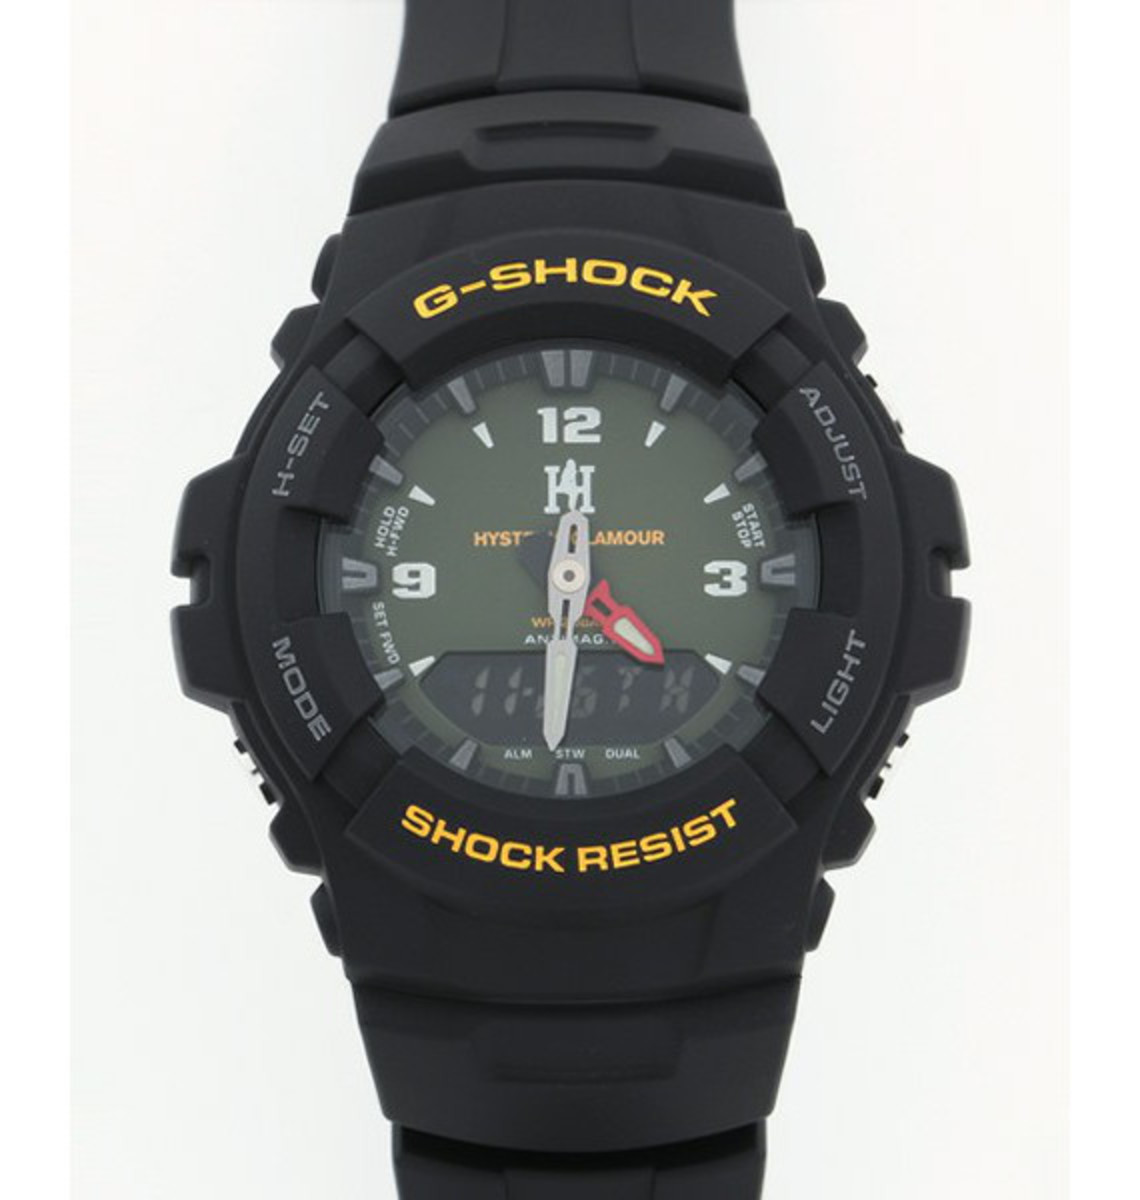 hysteric-glamour-g-shock-watch-01